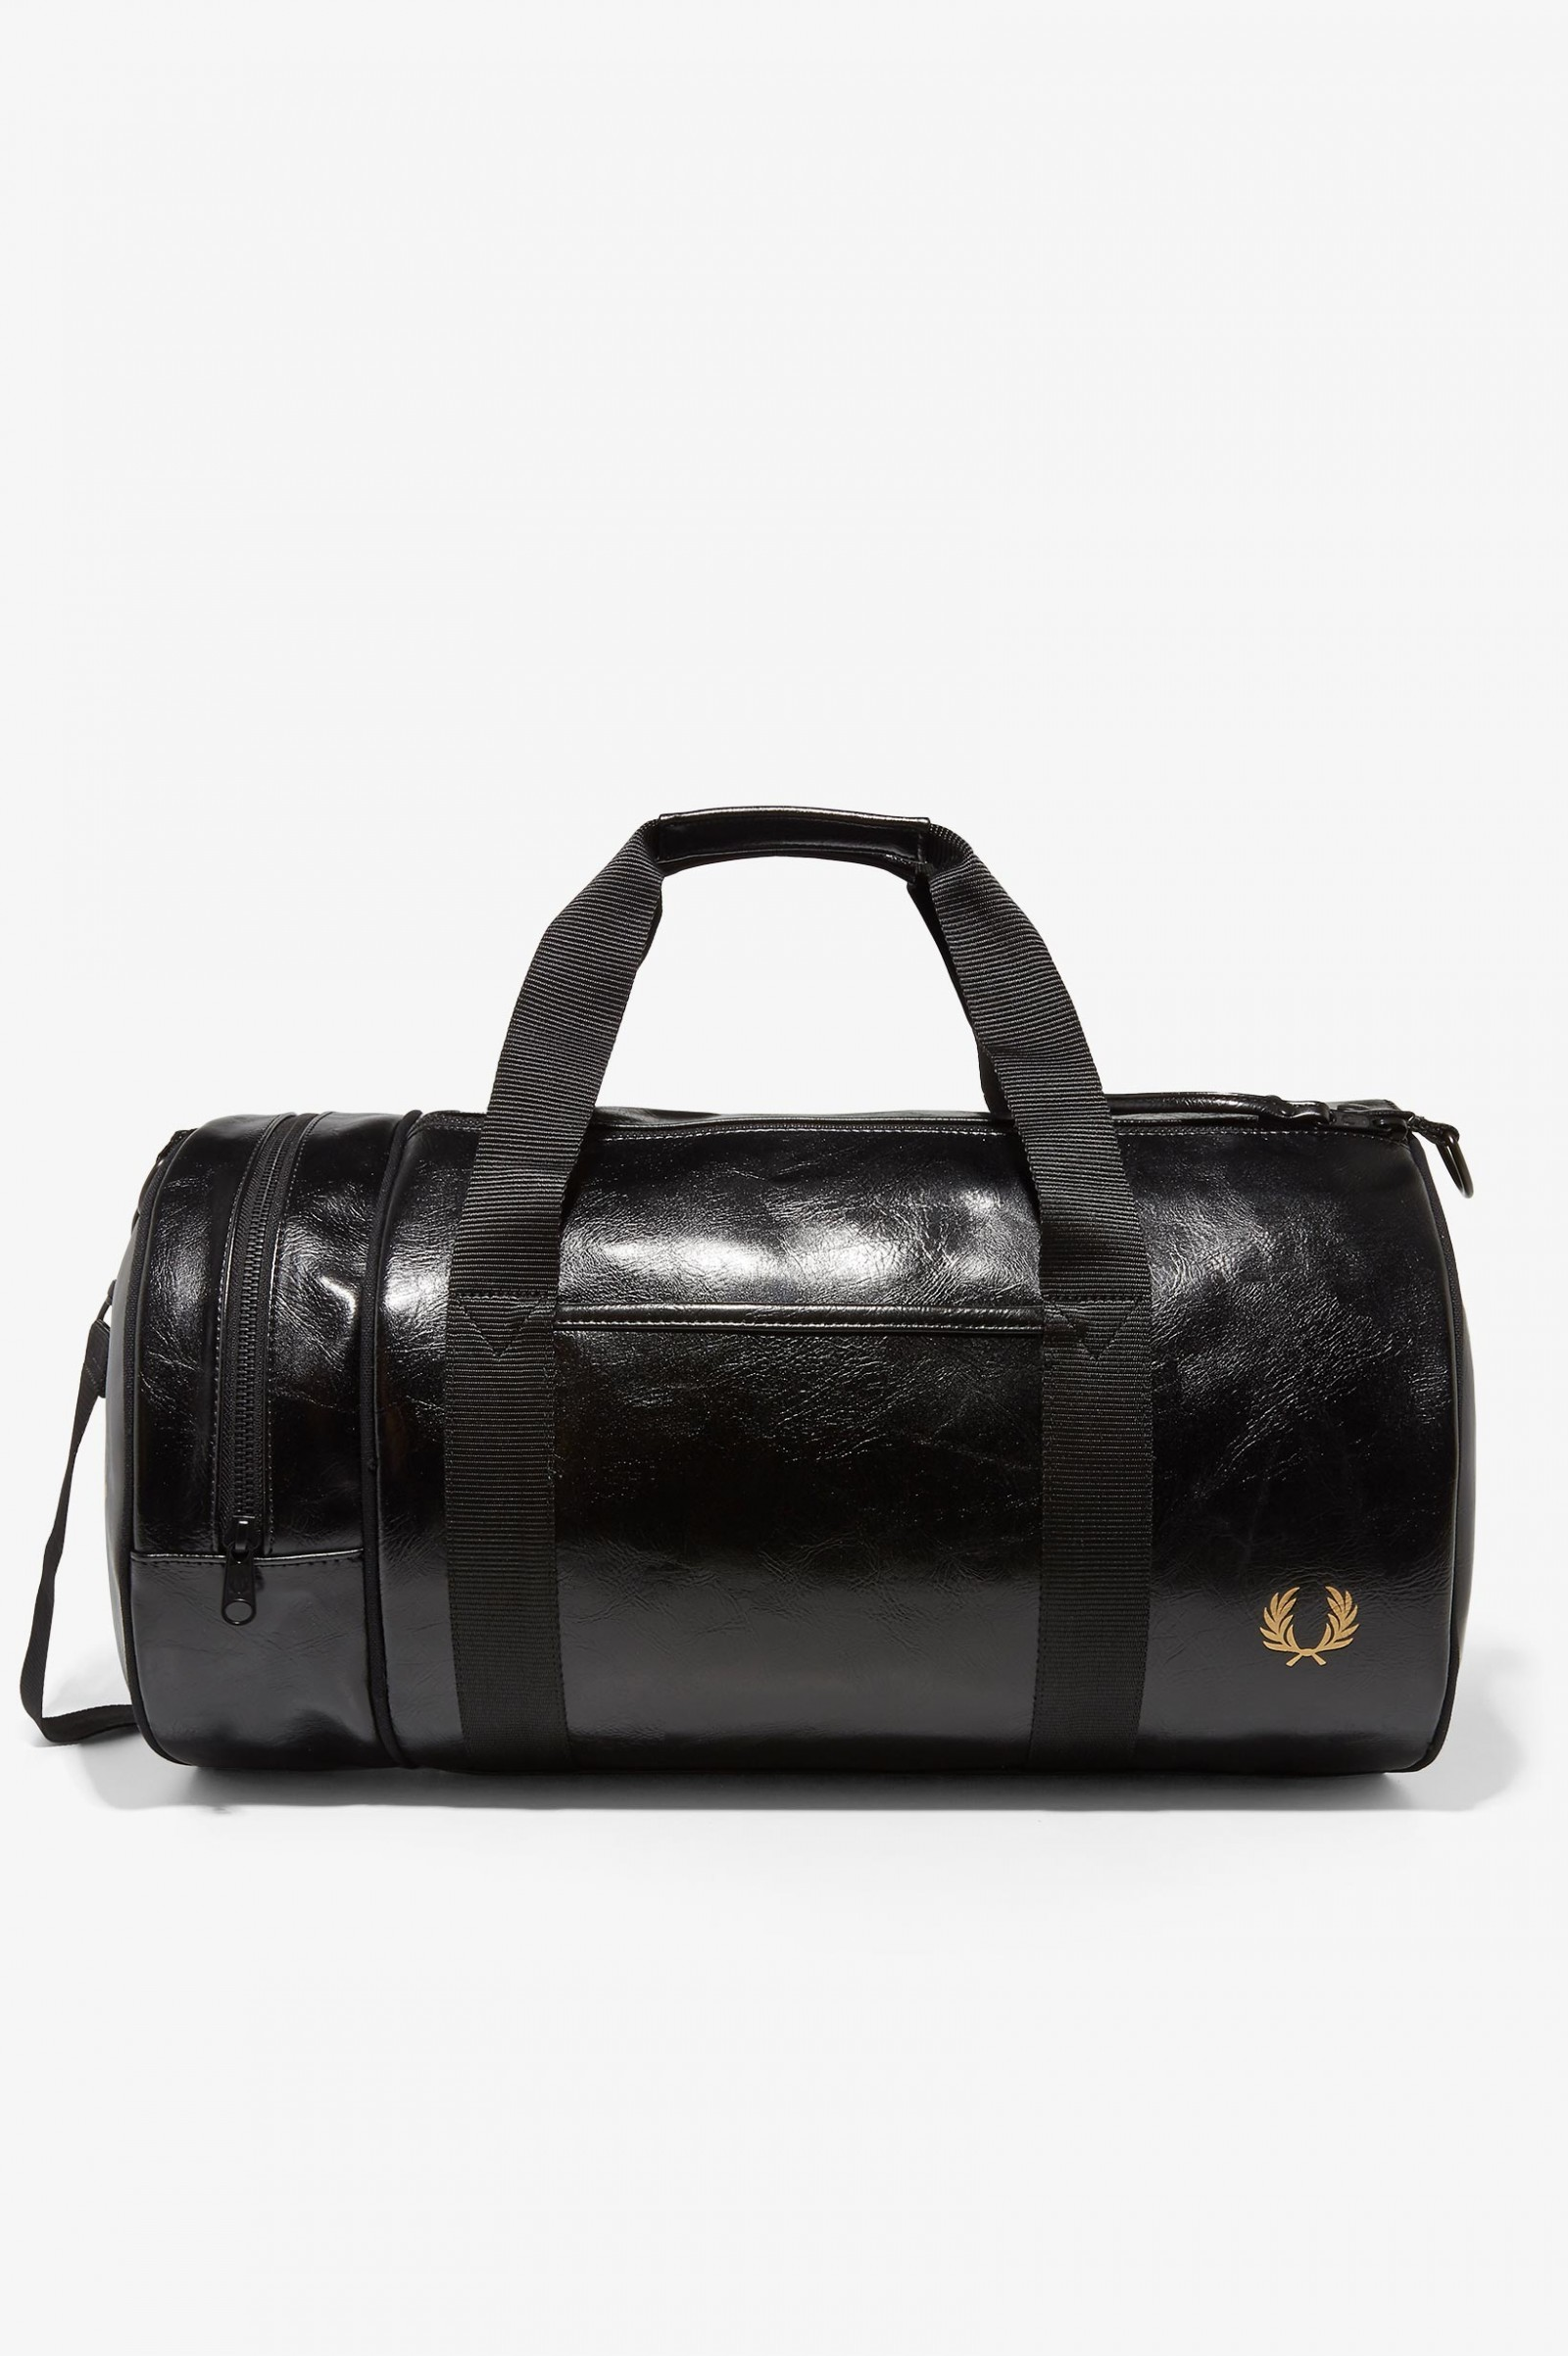 23fc1742ae48 Classic Barrel Bag - Black   Gold